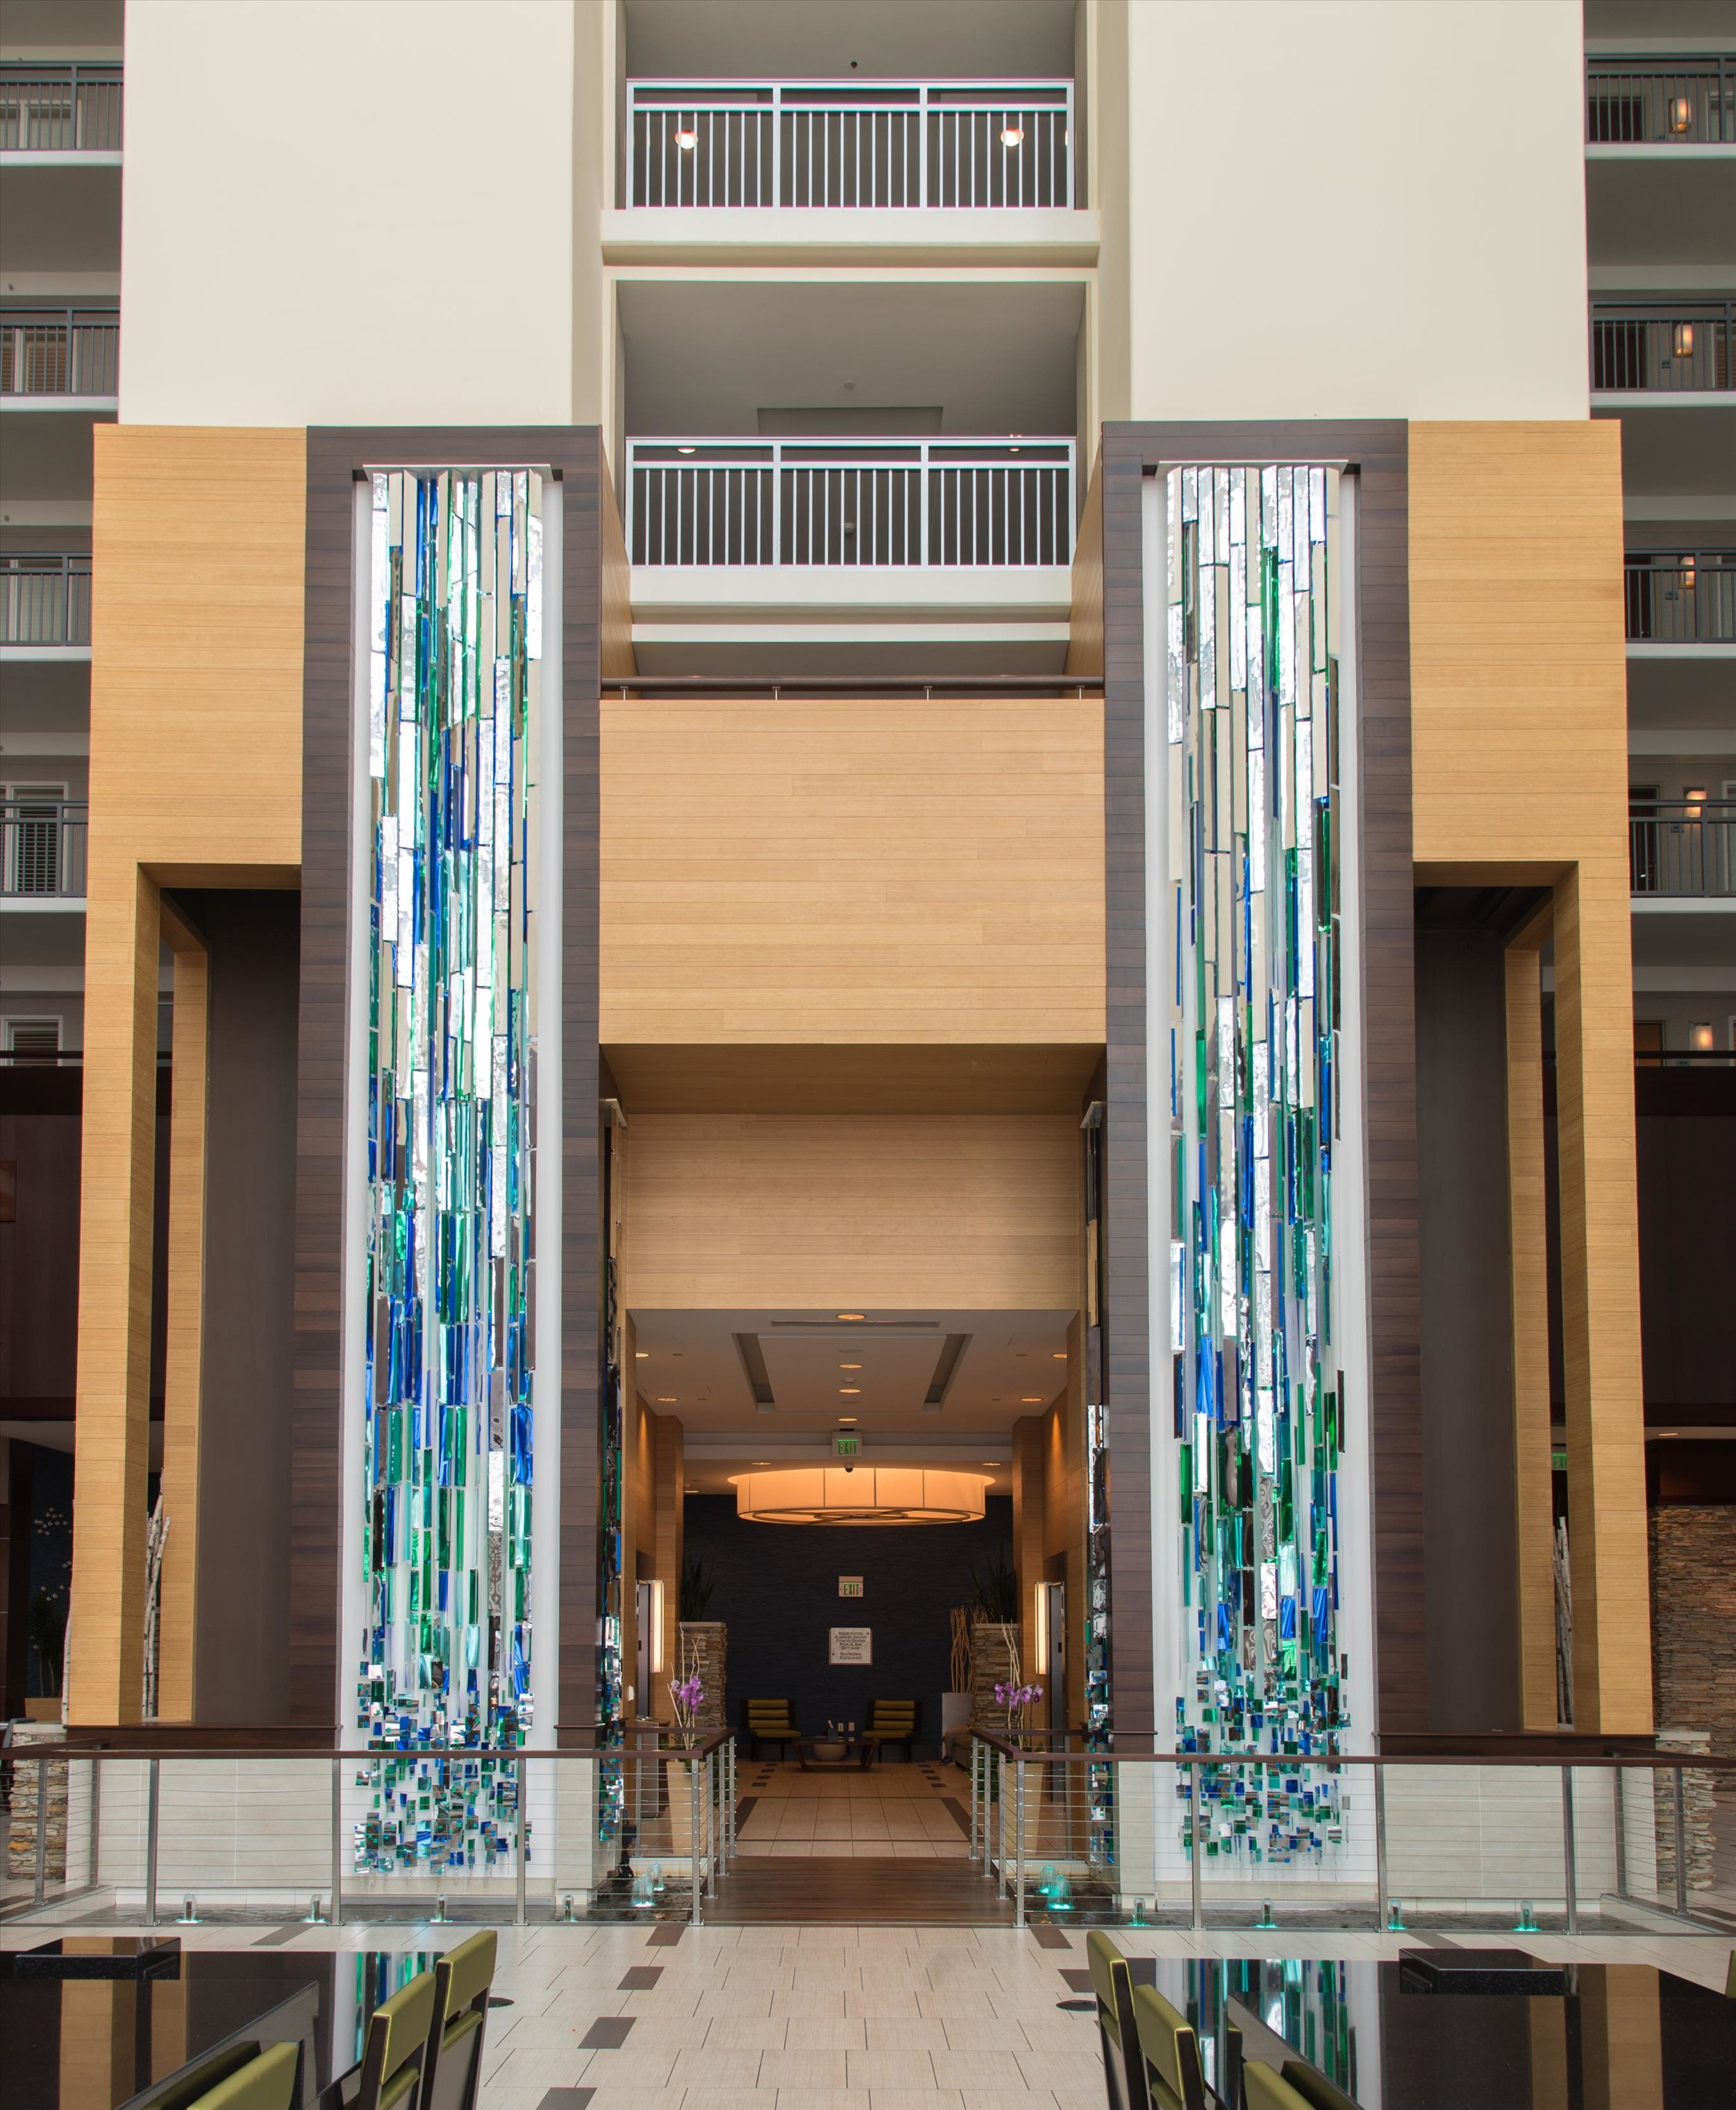 EMBASSY SUITES, DENVER - Curated by Indiewalls